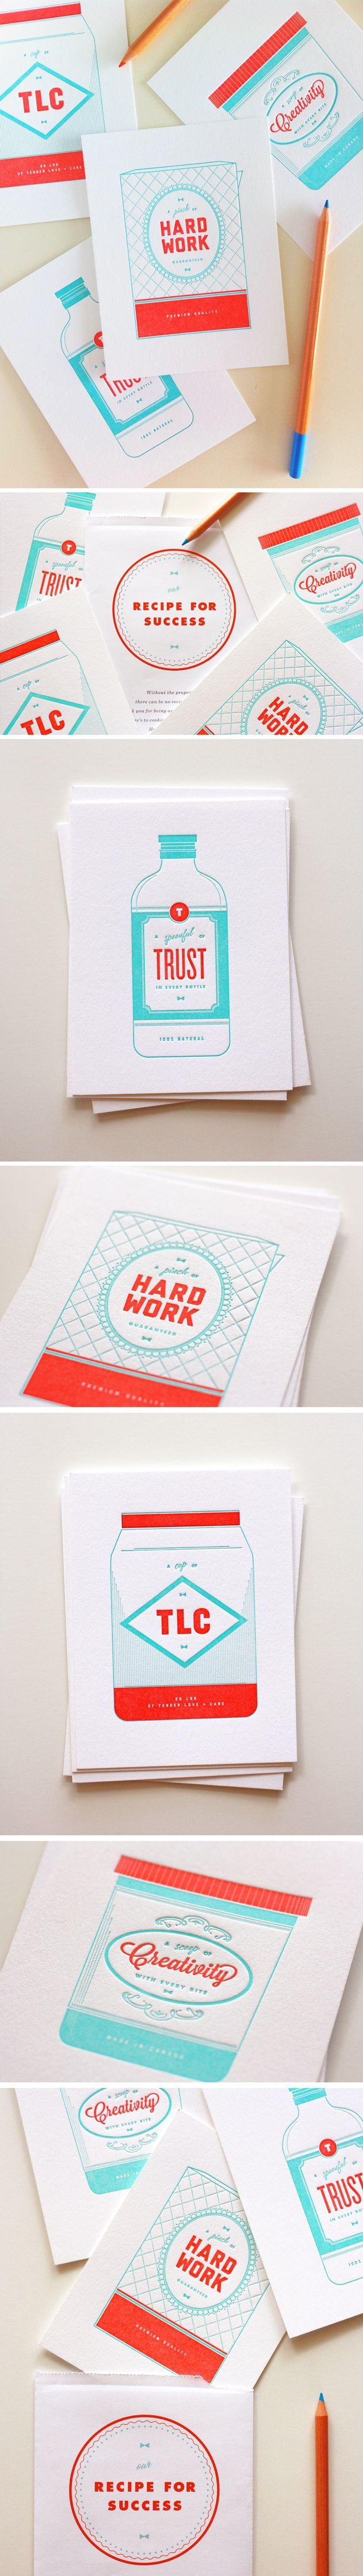 Recipe for Success Series One Plus One Design #Stationery #Design